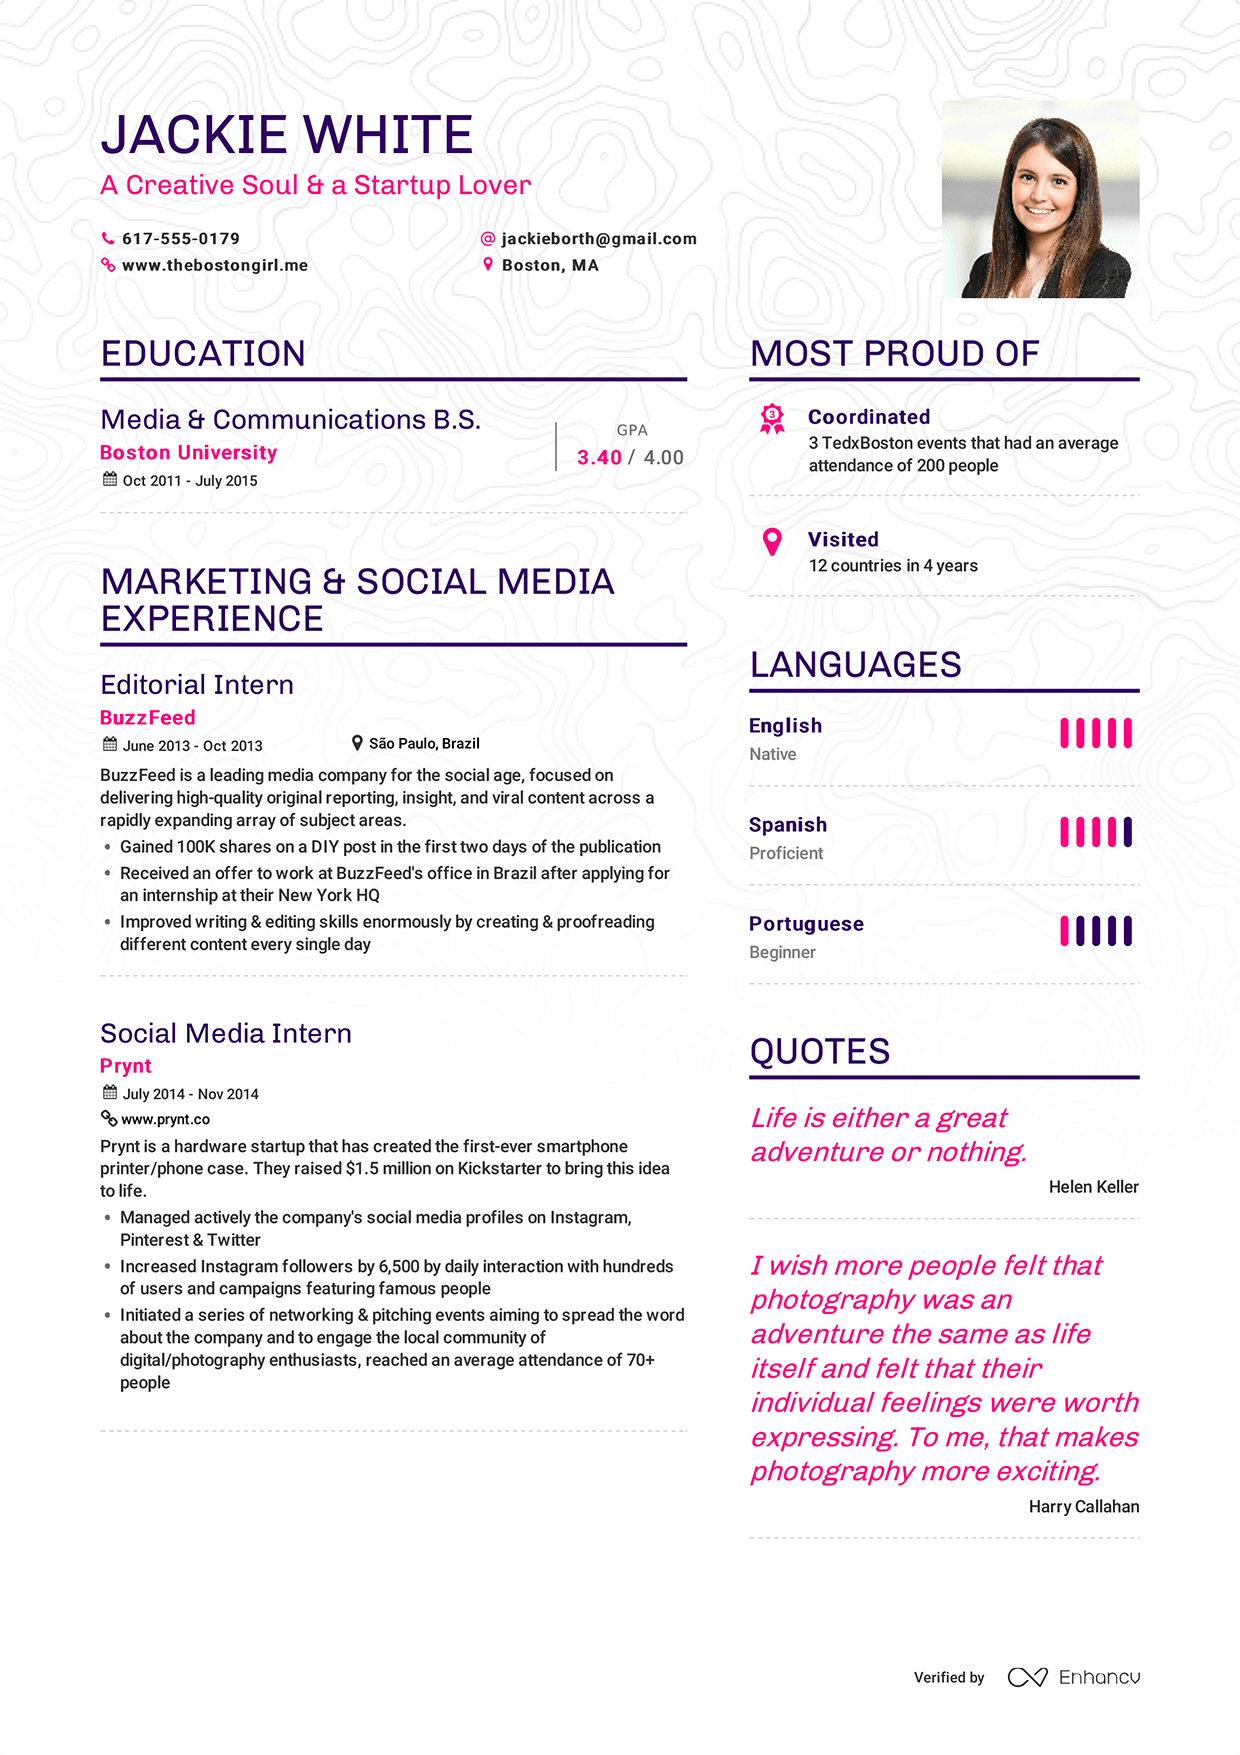 Artistic Resume Enhance Cv Beautiful Resumes Ux Design Pinterest